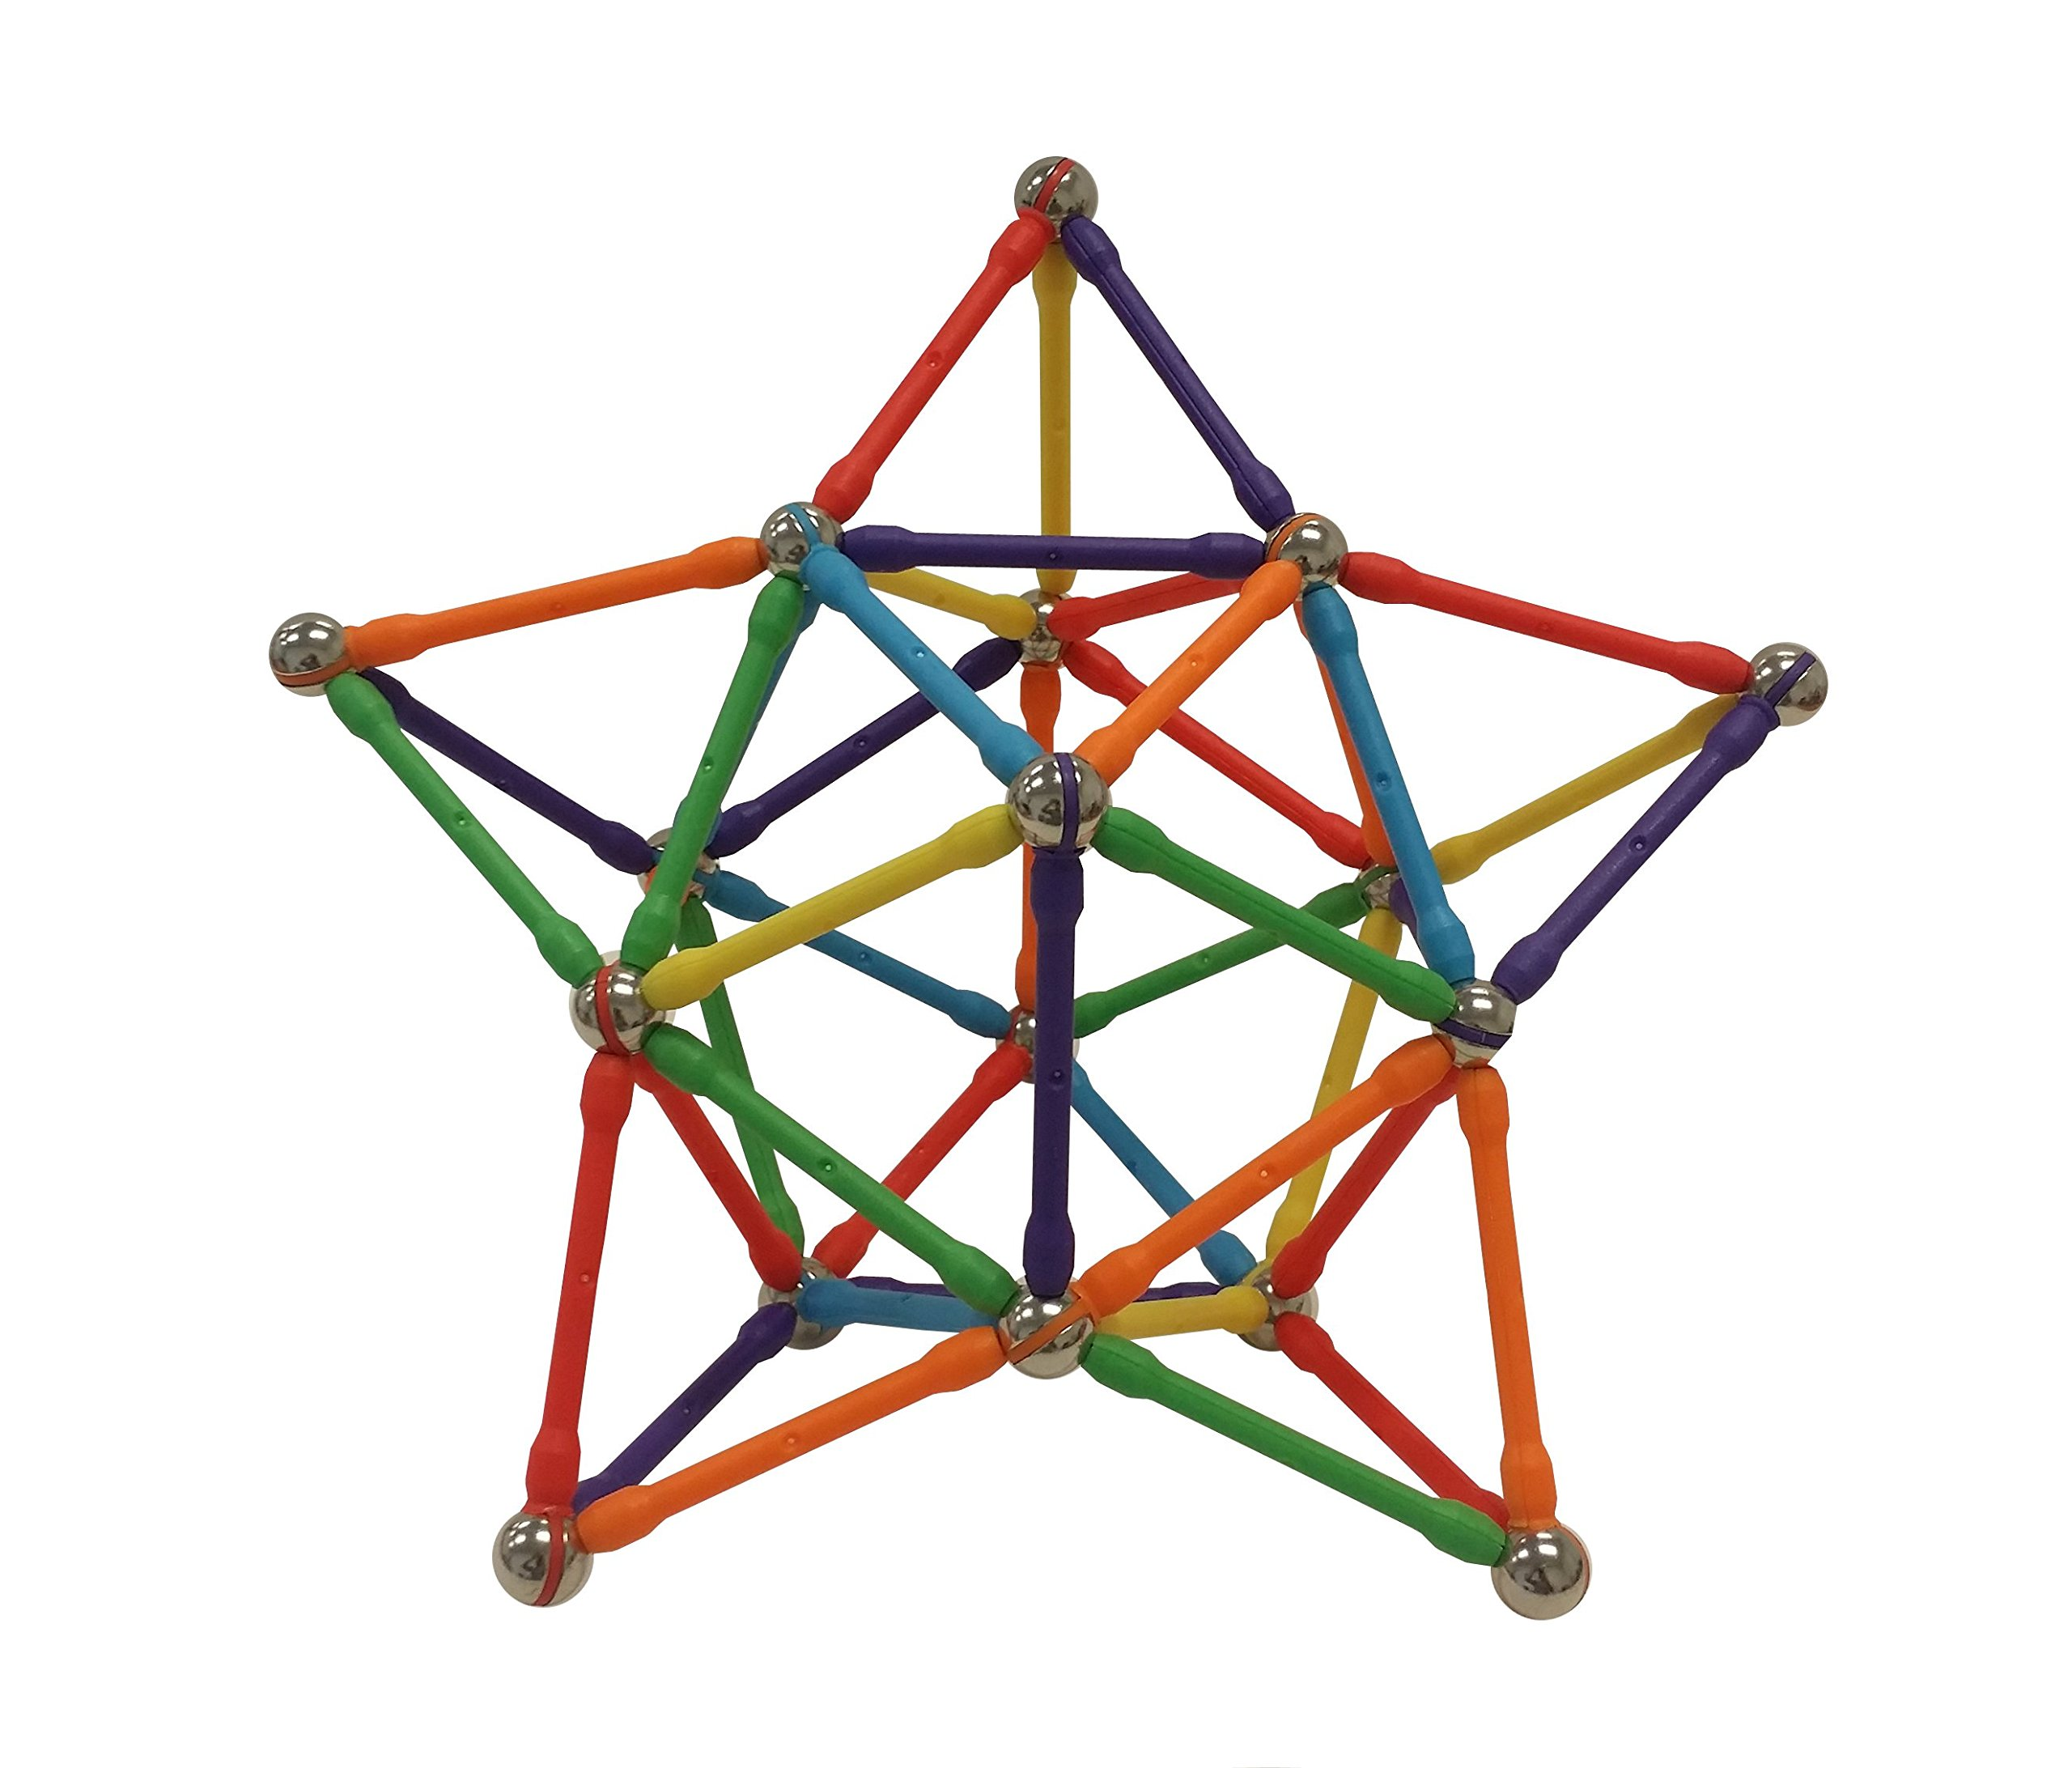 Magziod 48 Magnetic Building Set With No Loose Balls! Offered Exclusively By .. 12